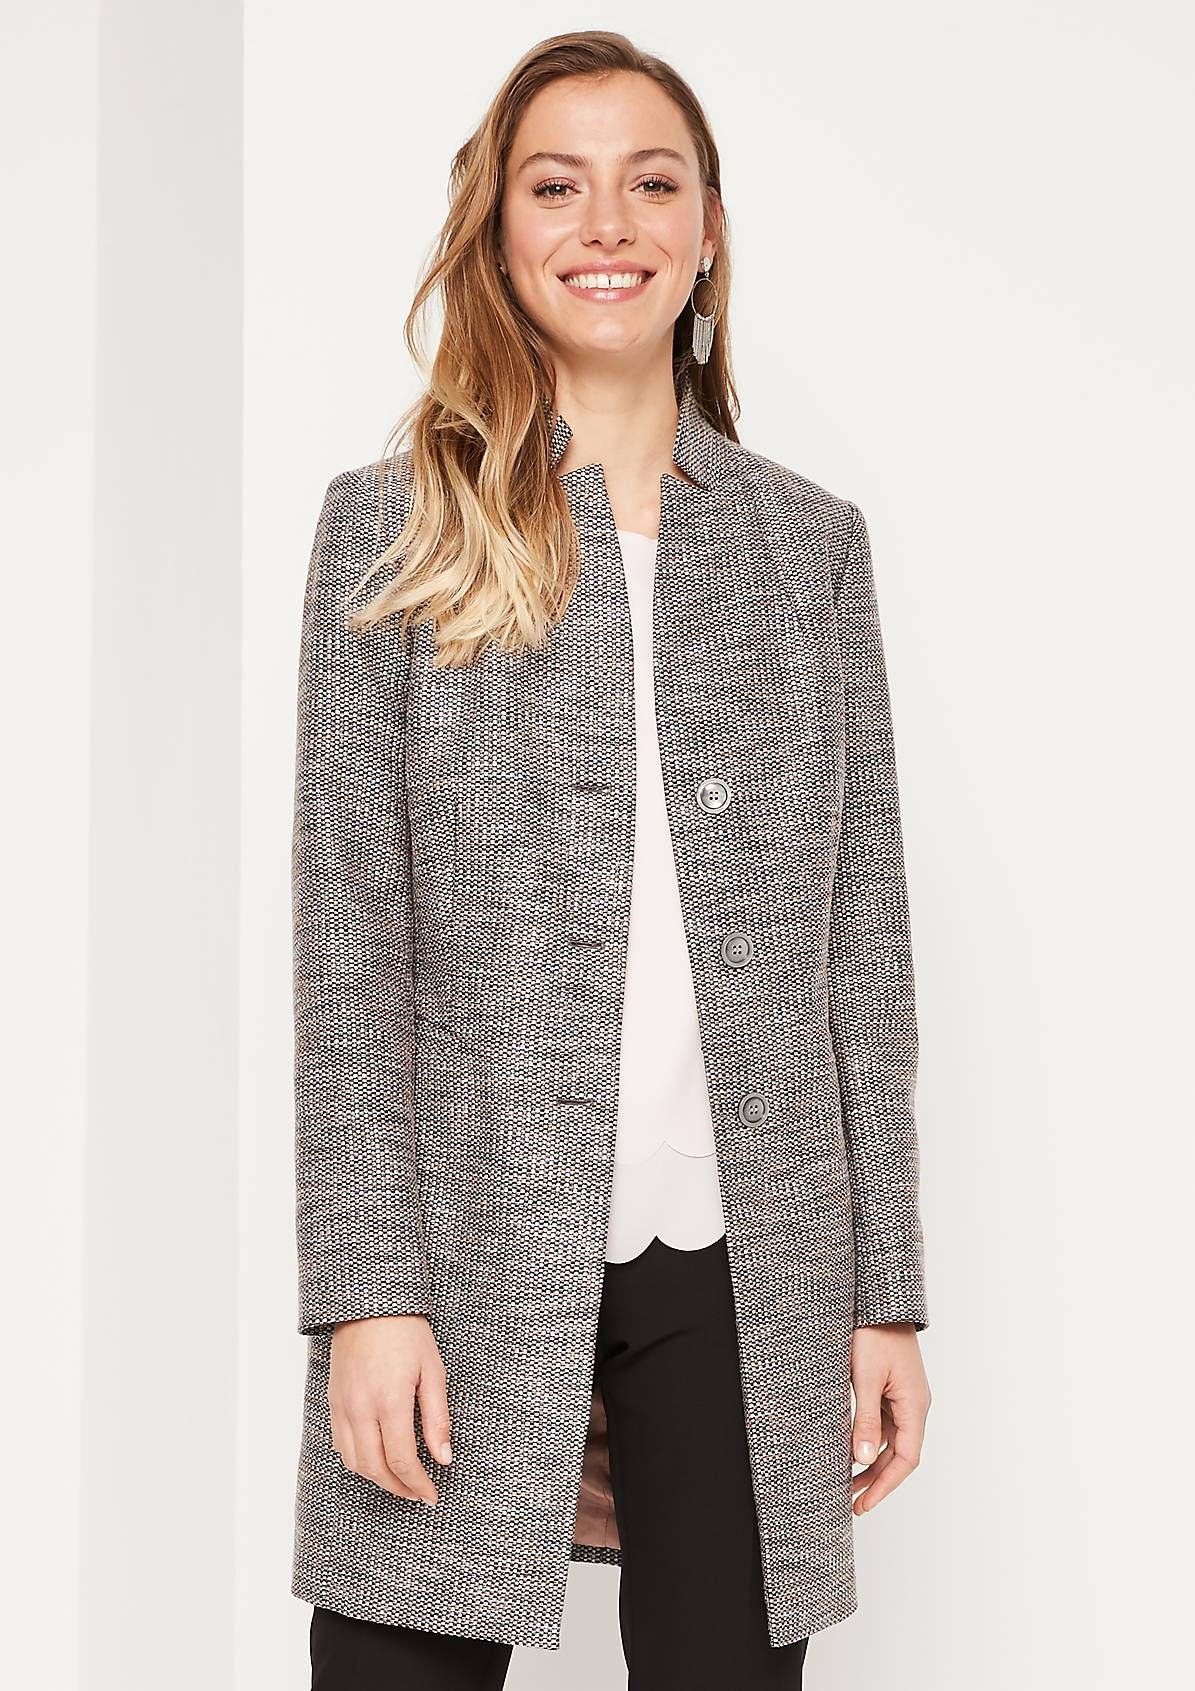 Mantel | Blazer, Fashion, Jackets